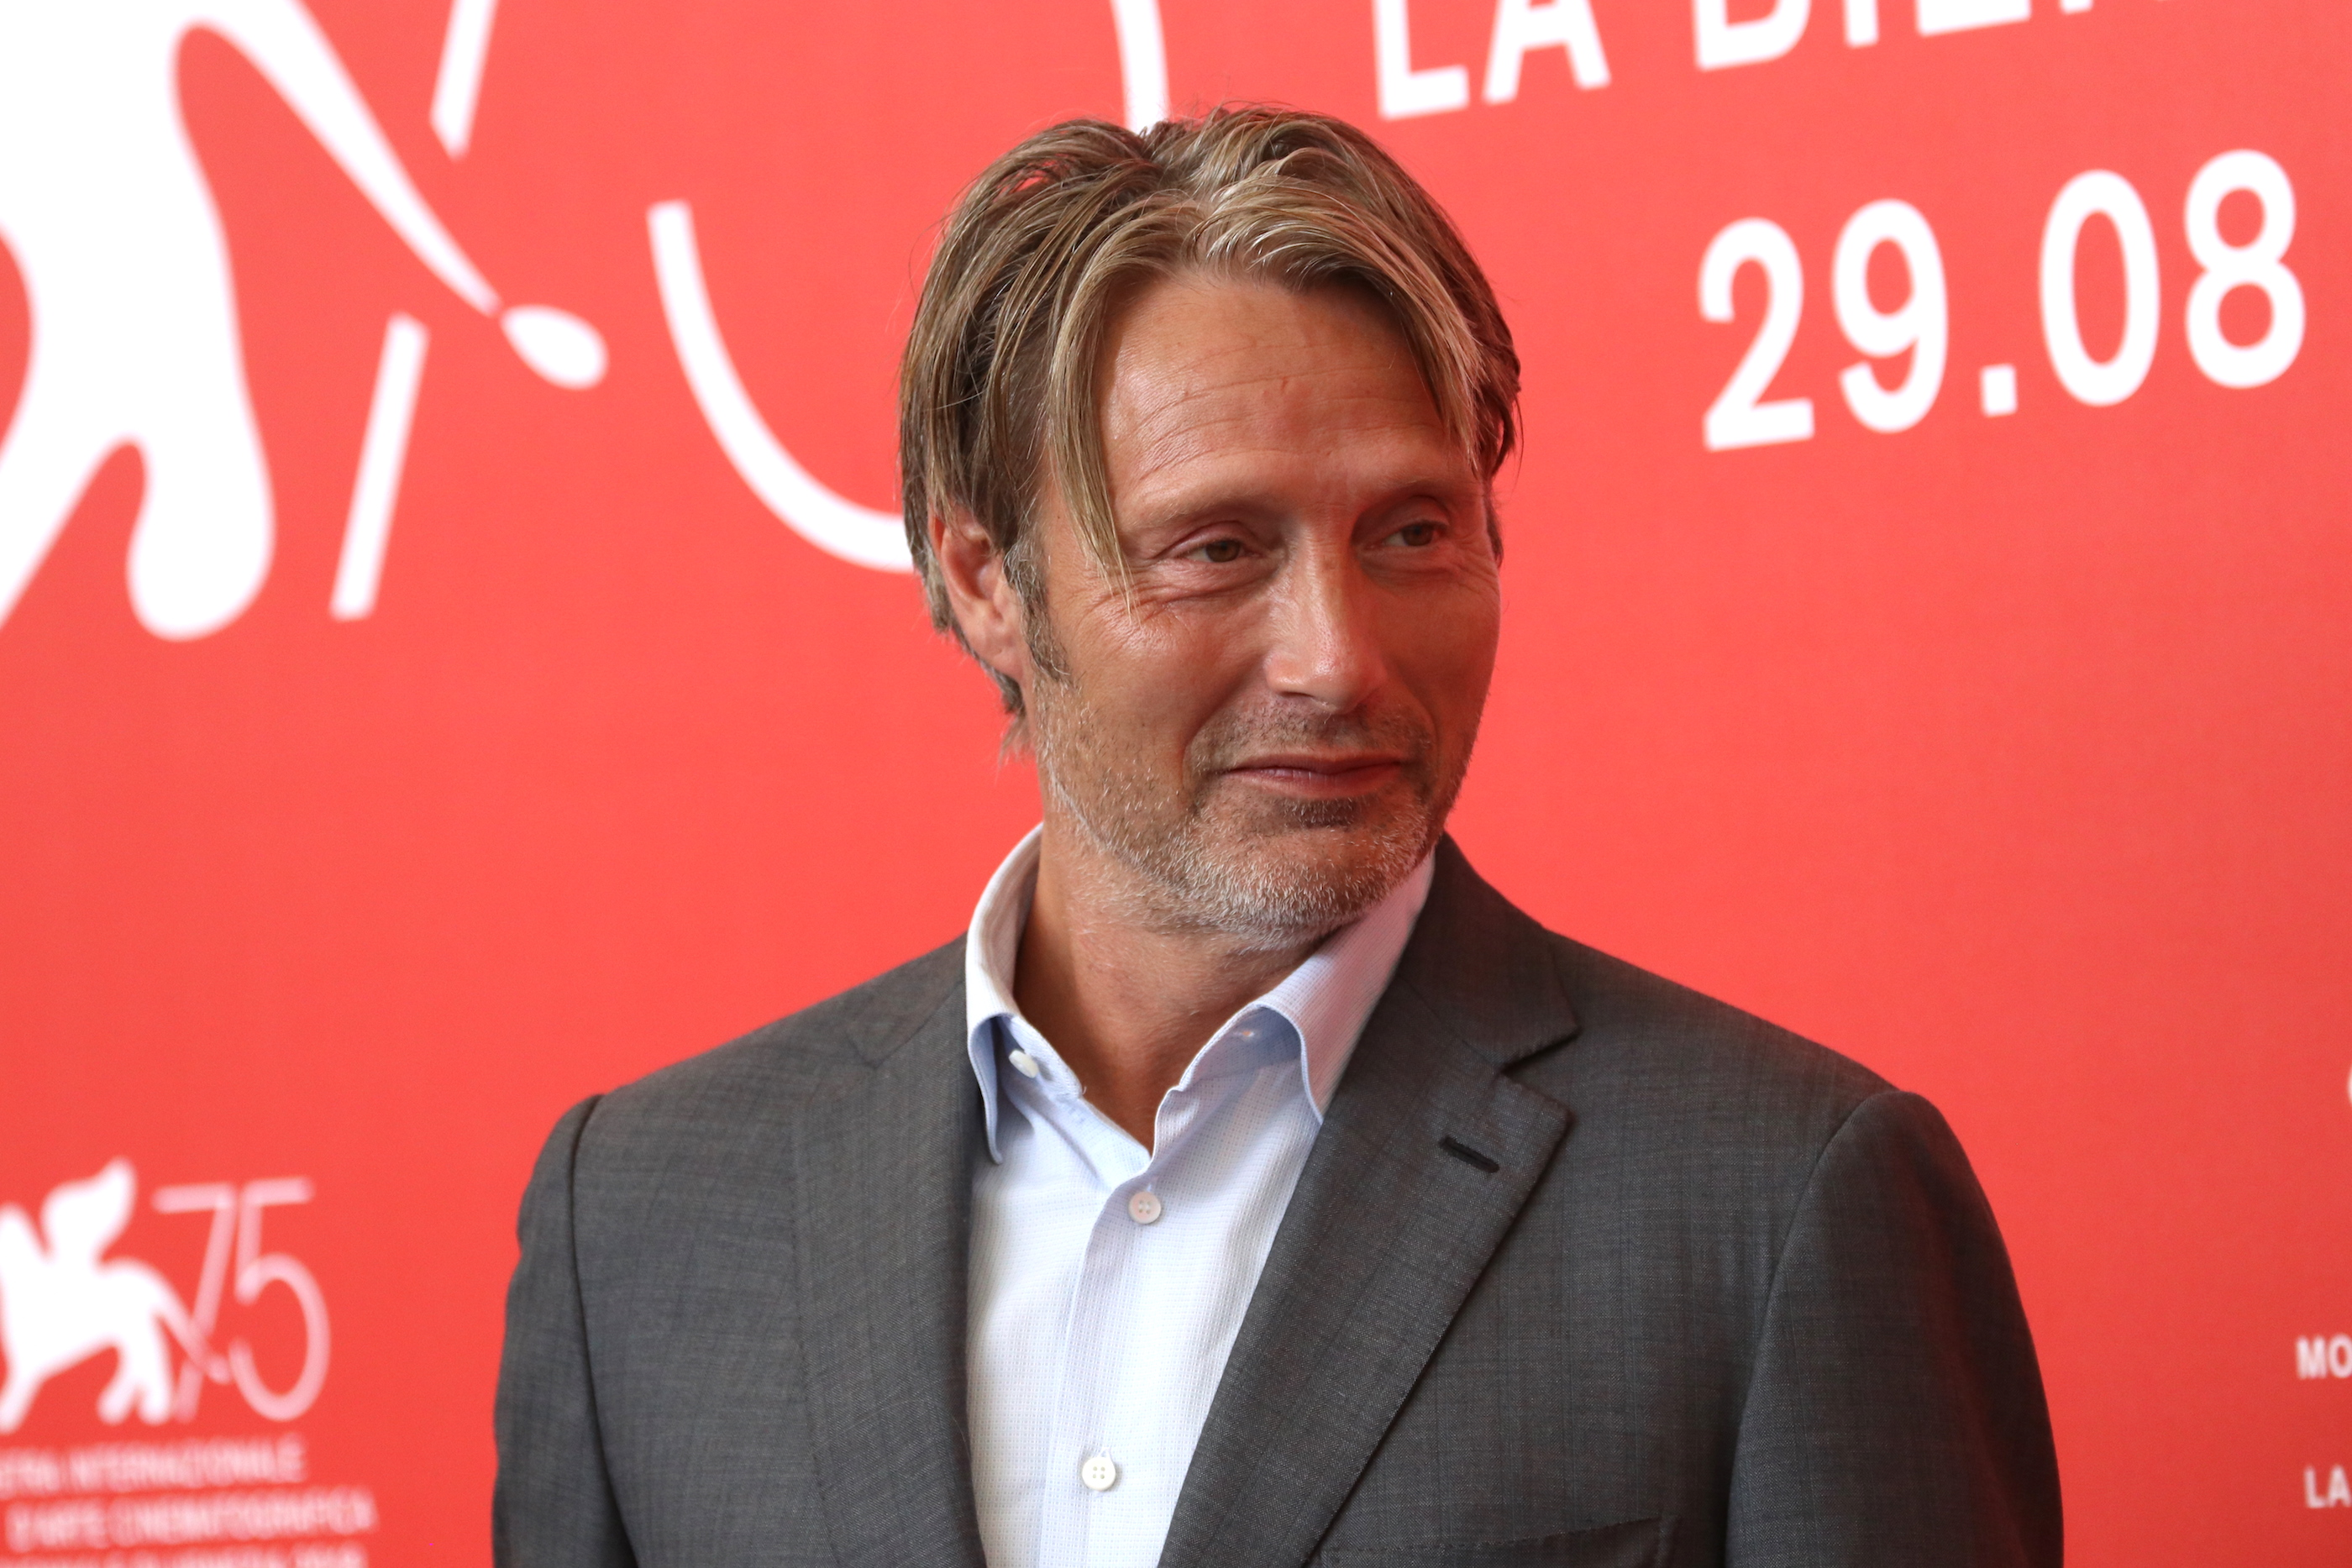 Venezia 2018: Mads Mikkelsen al photocall di At Eternity's Gate